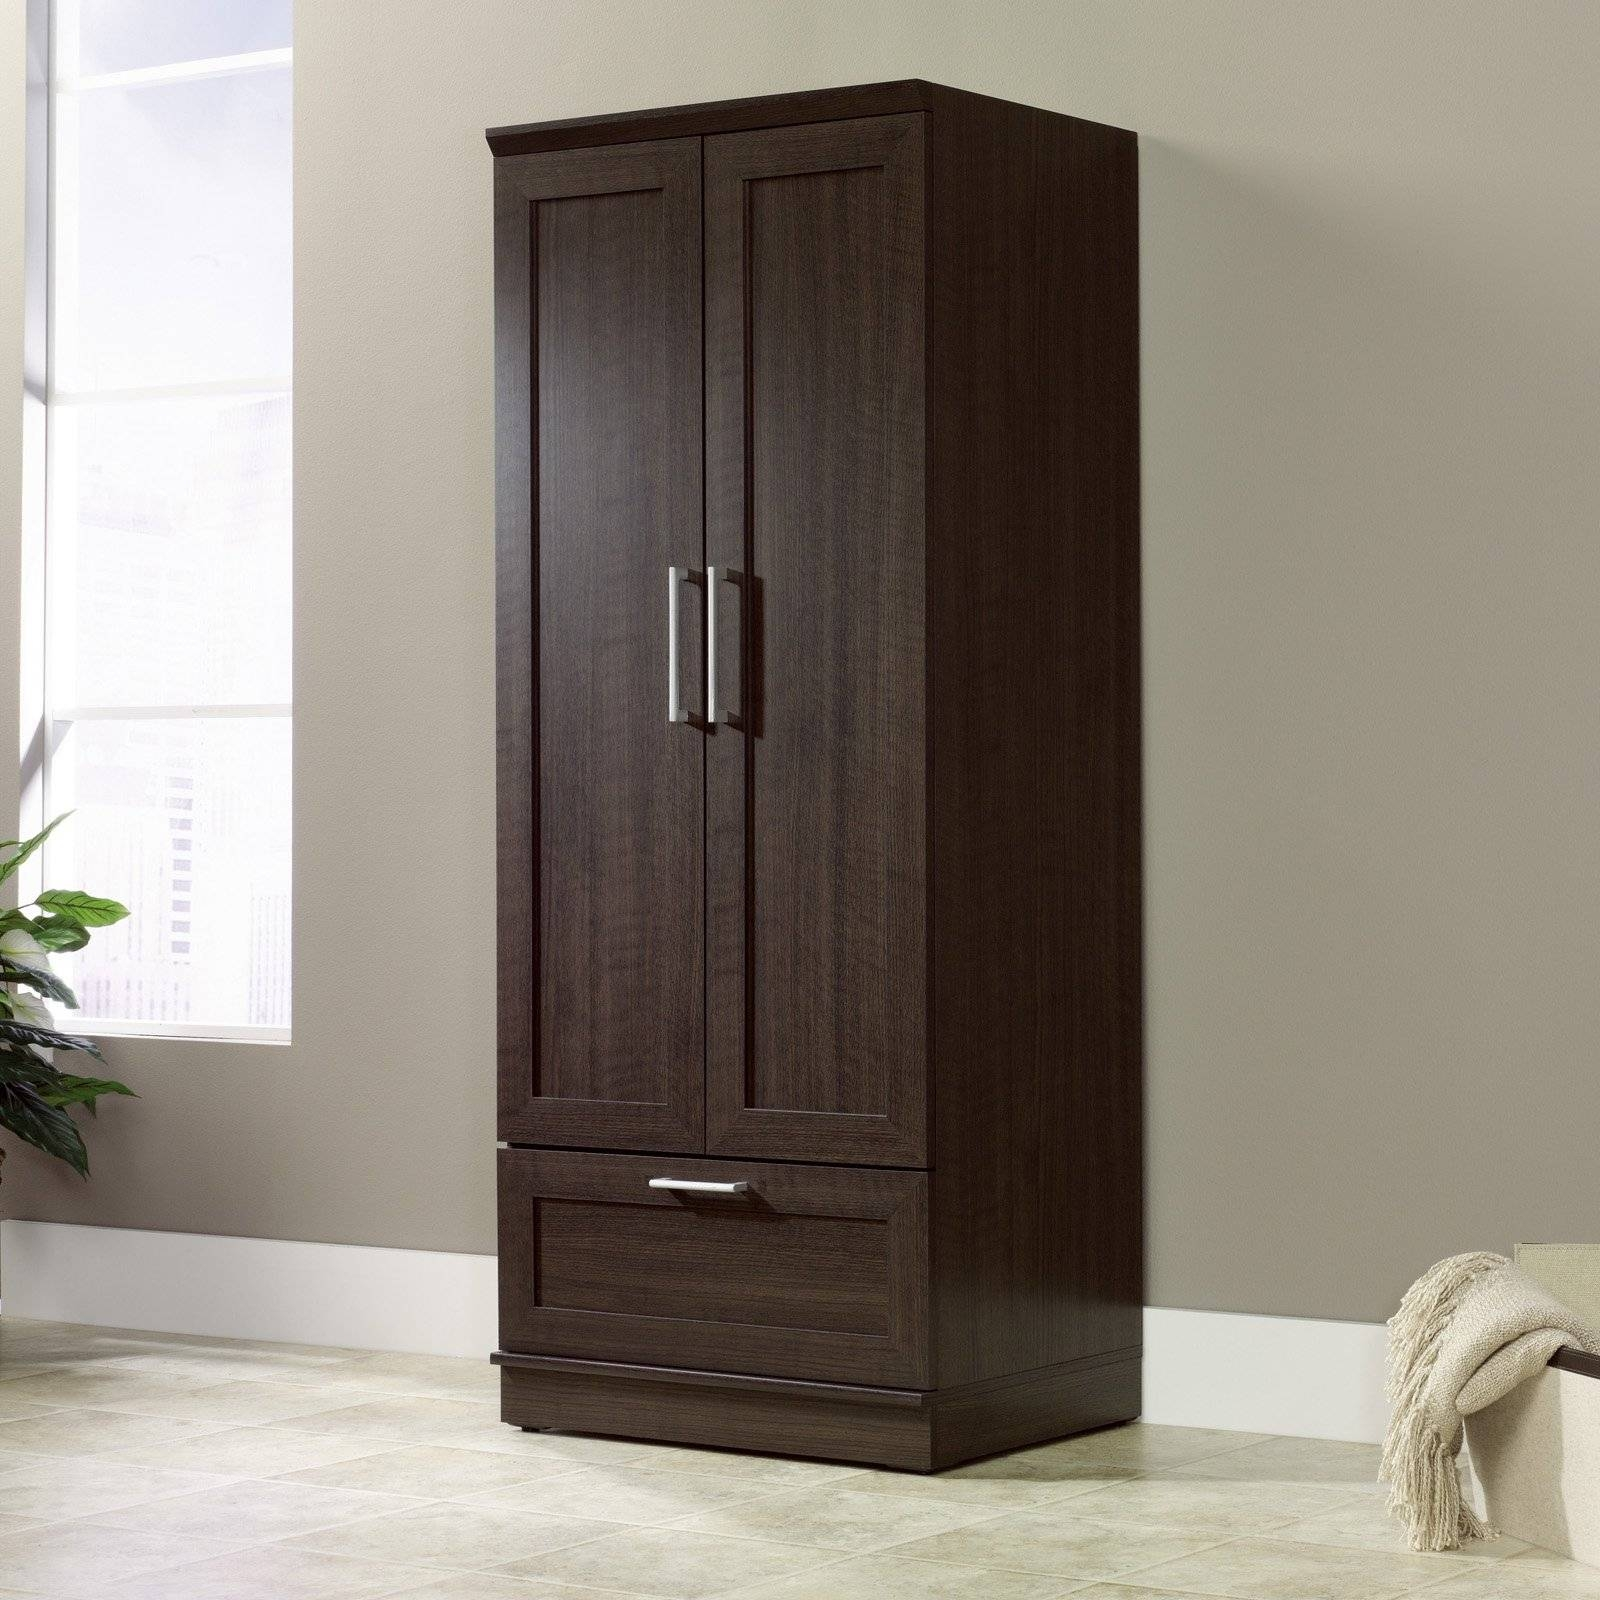 Bedroom Armoire Wardrobe pertaining to Dark Wood Wardrobe Closet (Image 5 of 30)